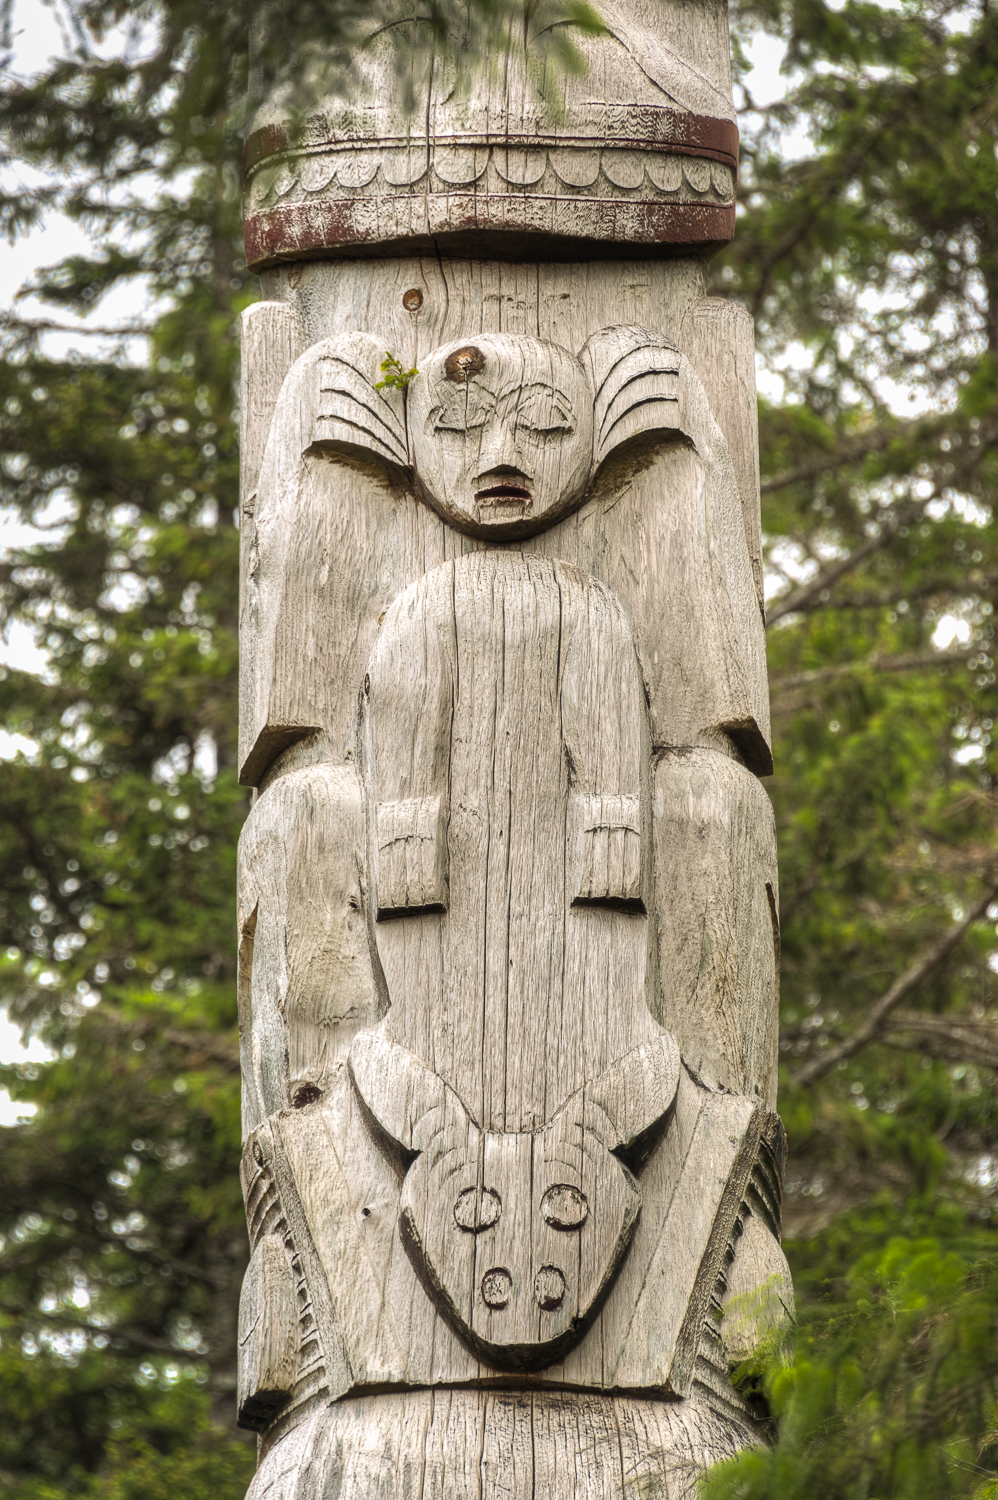 Anybody else see Bozo the Clown in this totem.